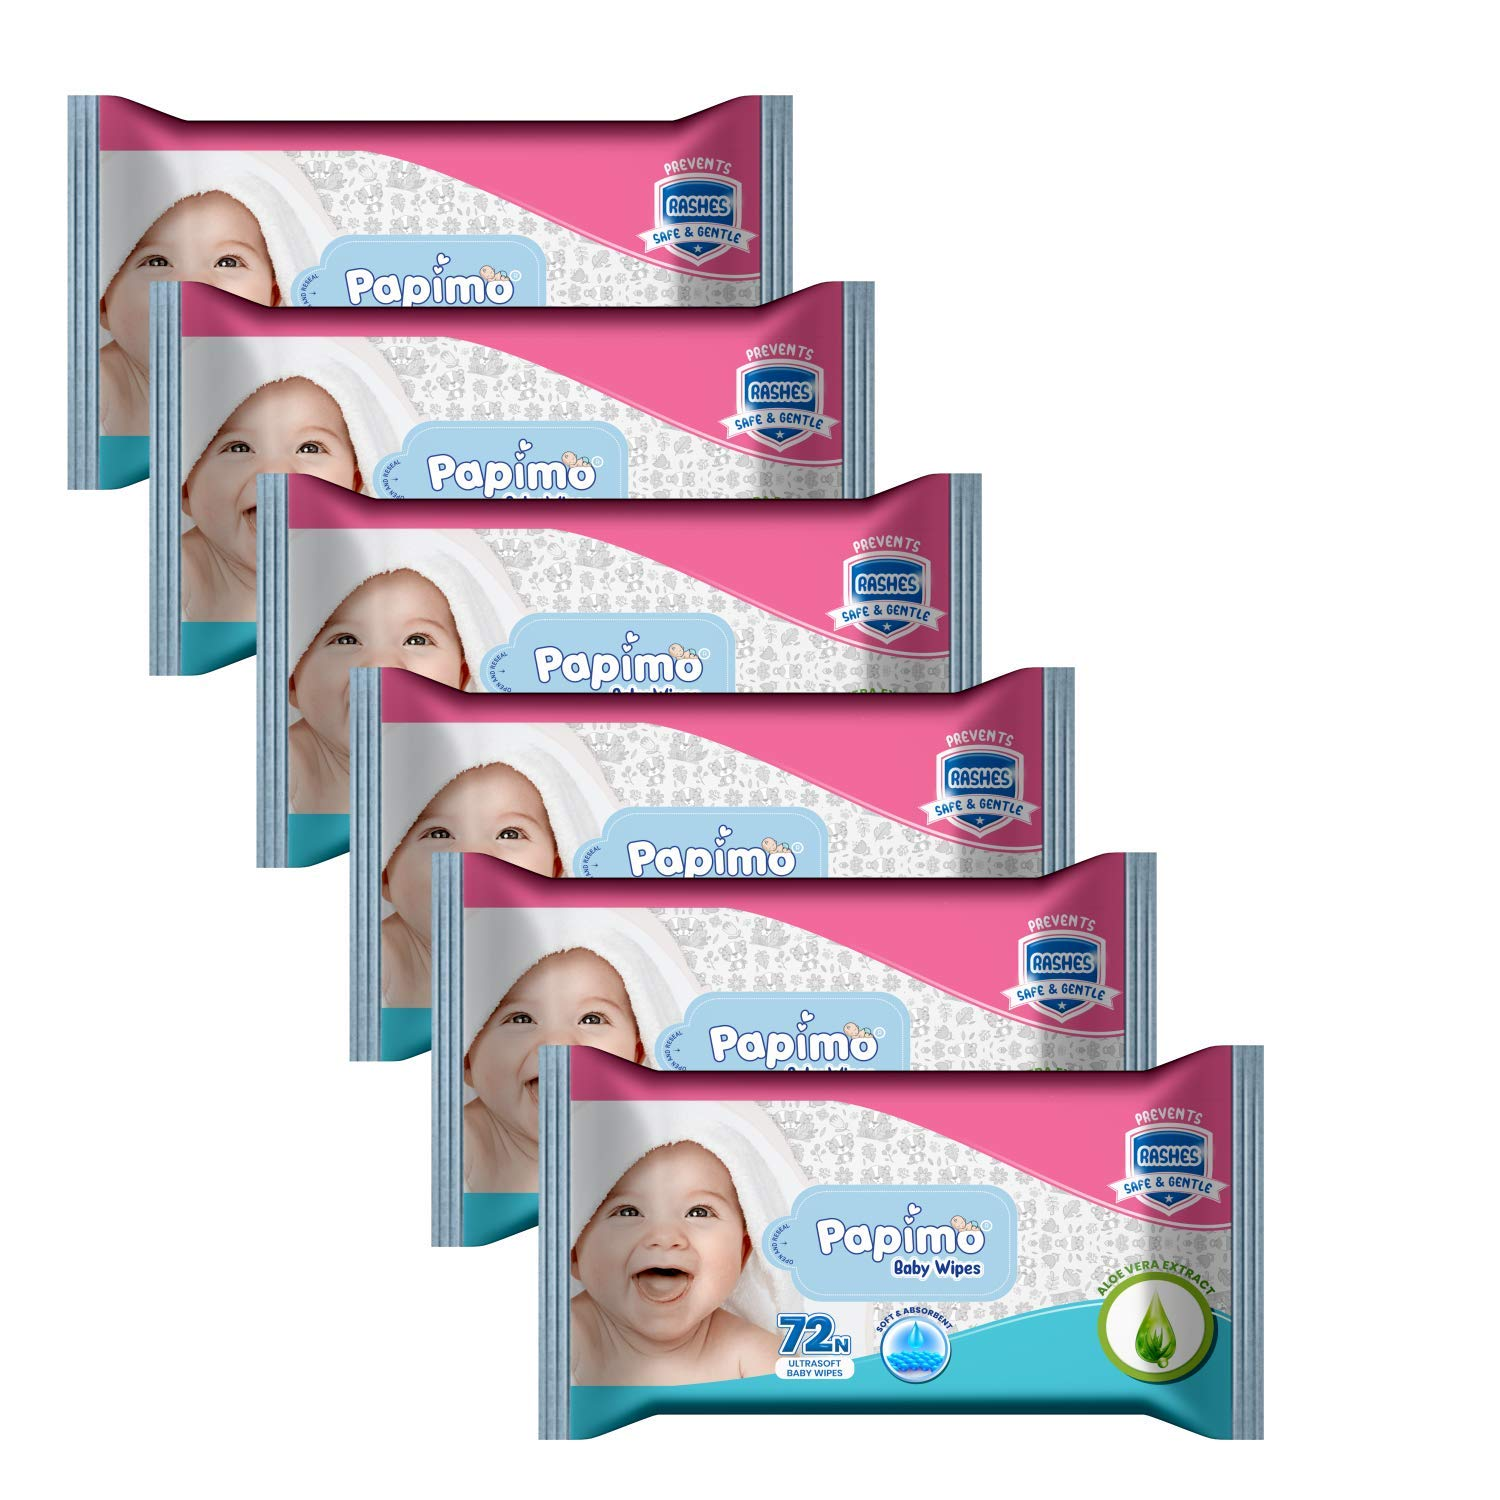 Papimo Ultrasoft Baby Wet Wipes With Aloe Vera NO Parabens NO Alcohol - 72 Count (Pack of 6)